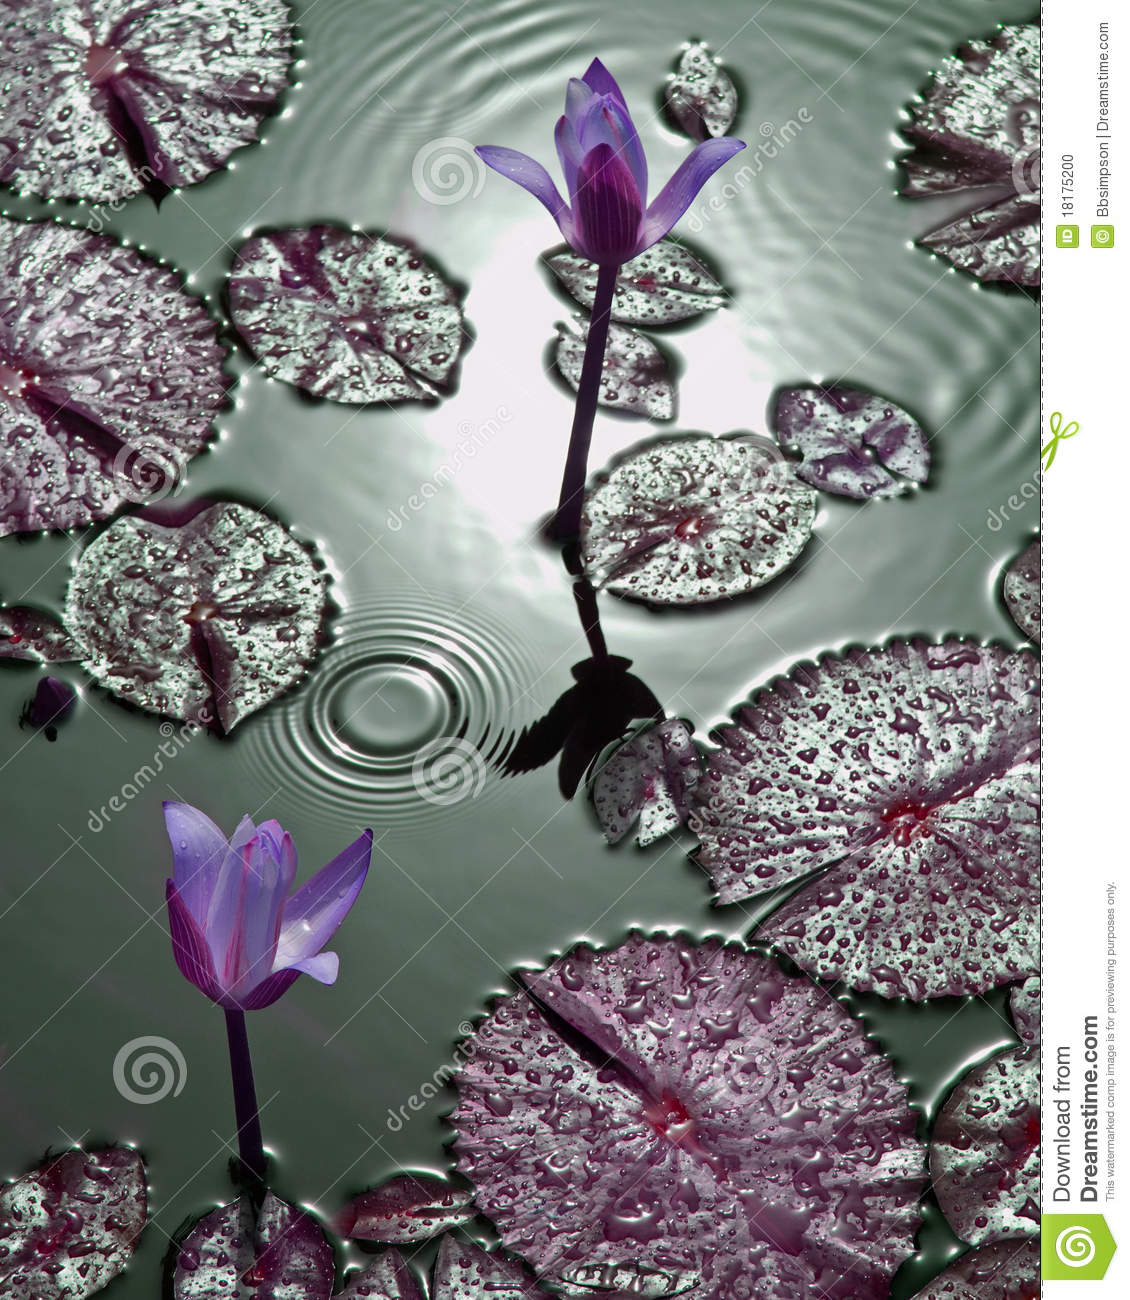 Purple tropical water lilies with water droplets